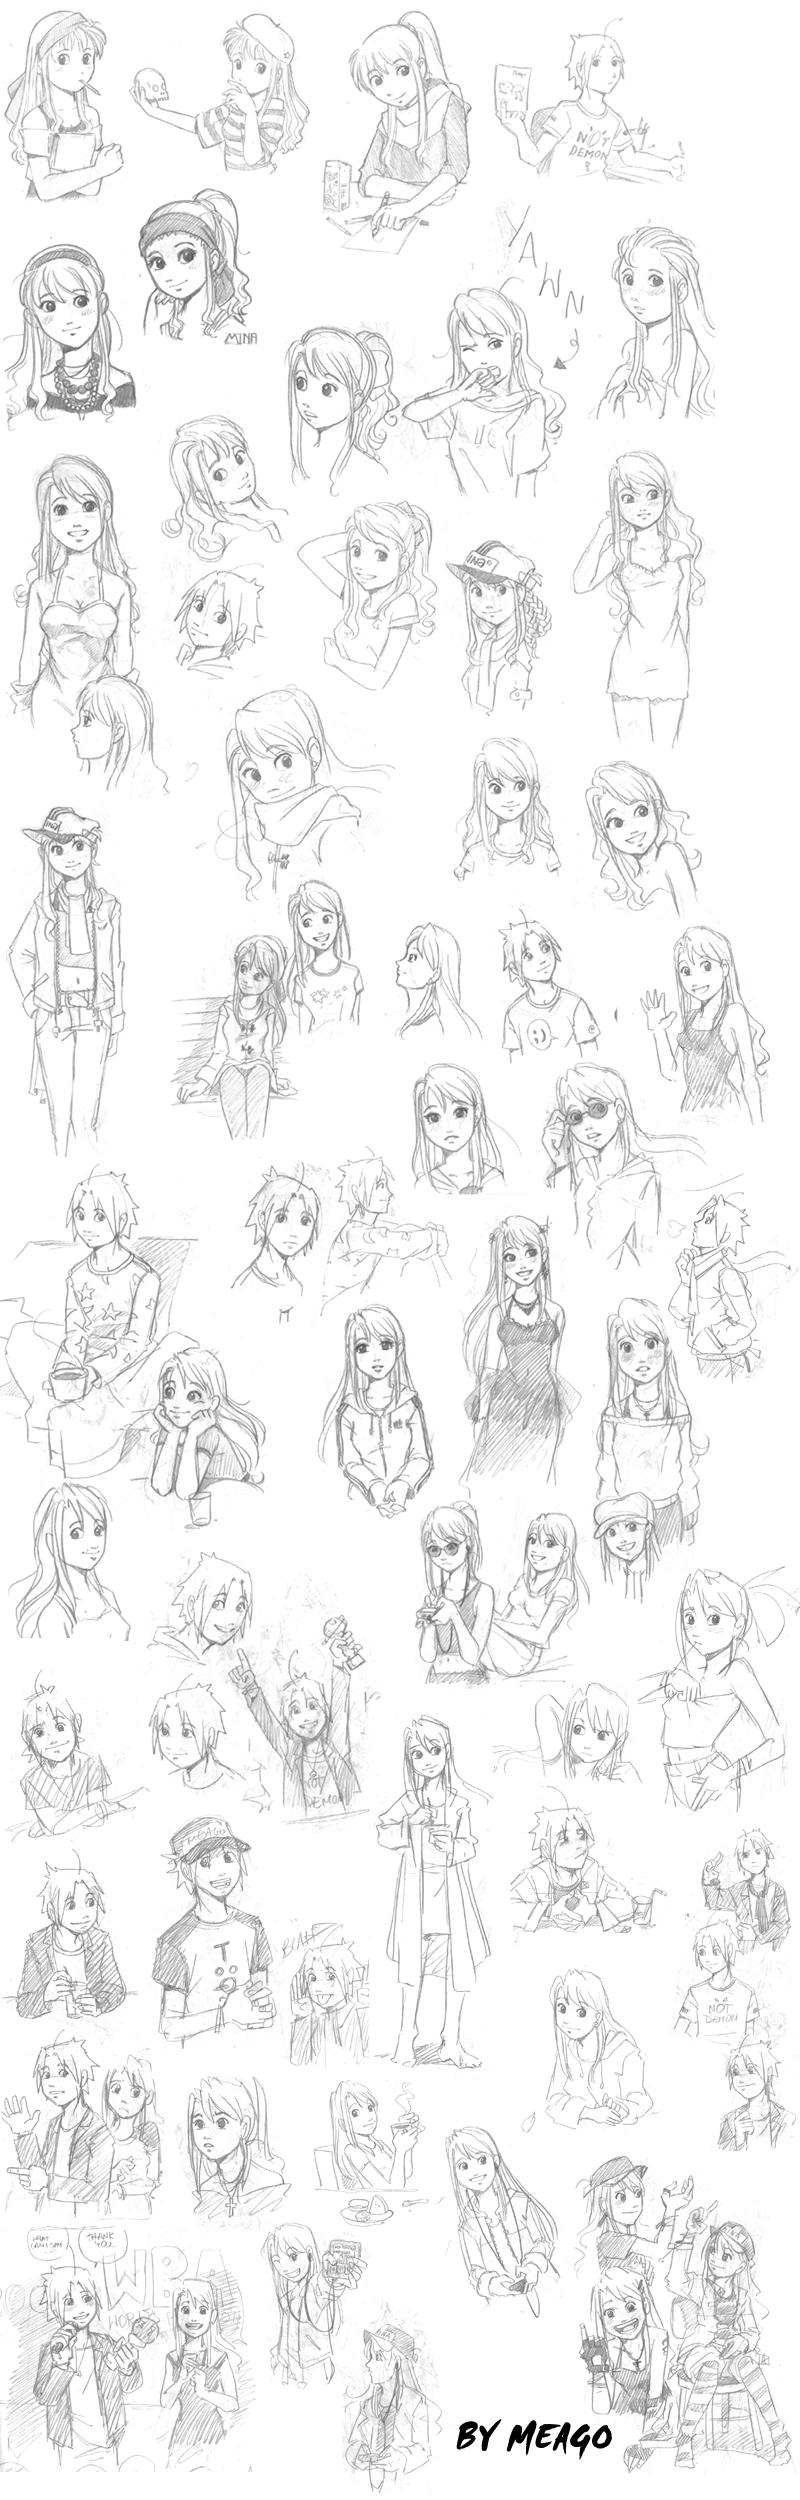 Meago Saga random sketches by meago